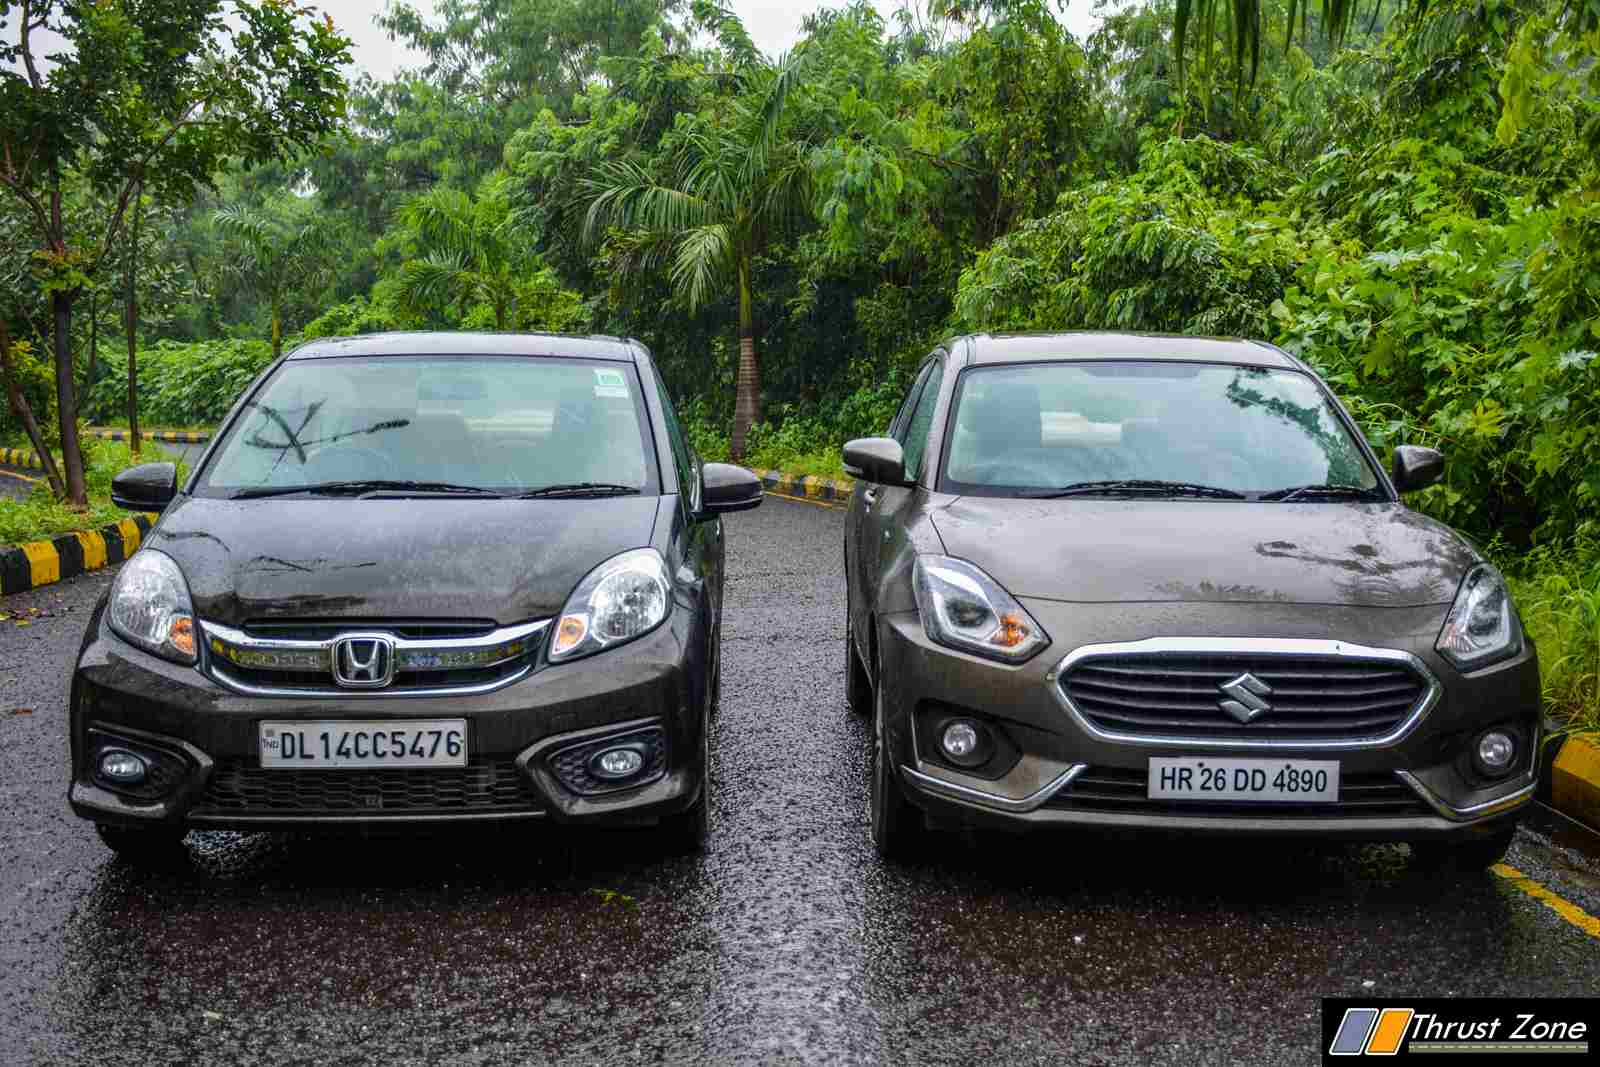 https://www.thrustzone.com/wp-content/uploads/2017/10/Honda-Amaze-vs-Maruti-Dzire-Petrol-Comparison-Review-5.jpg